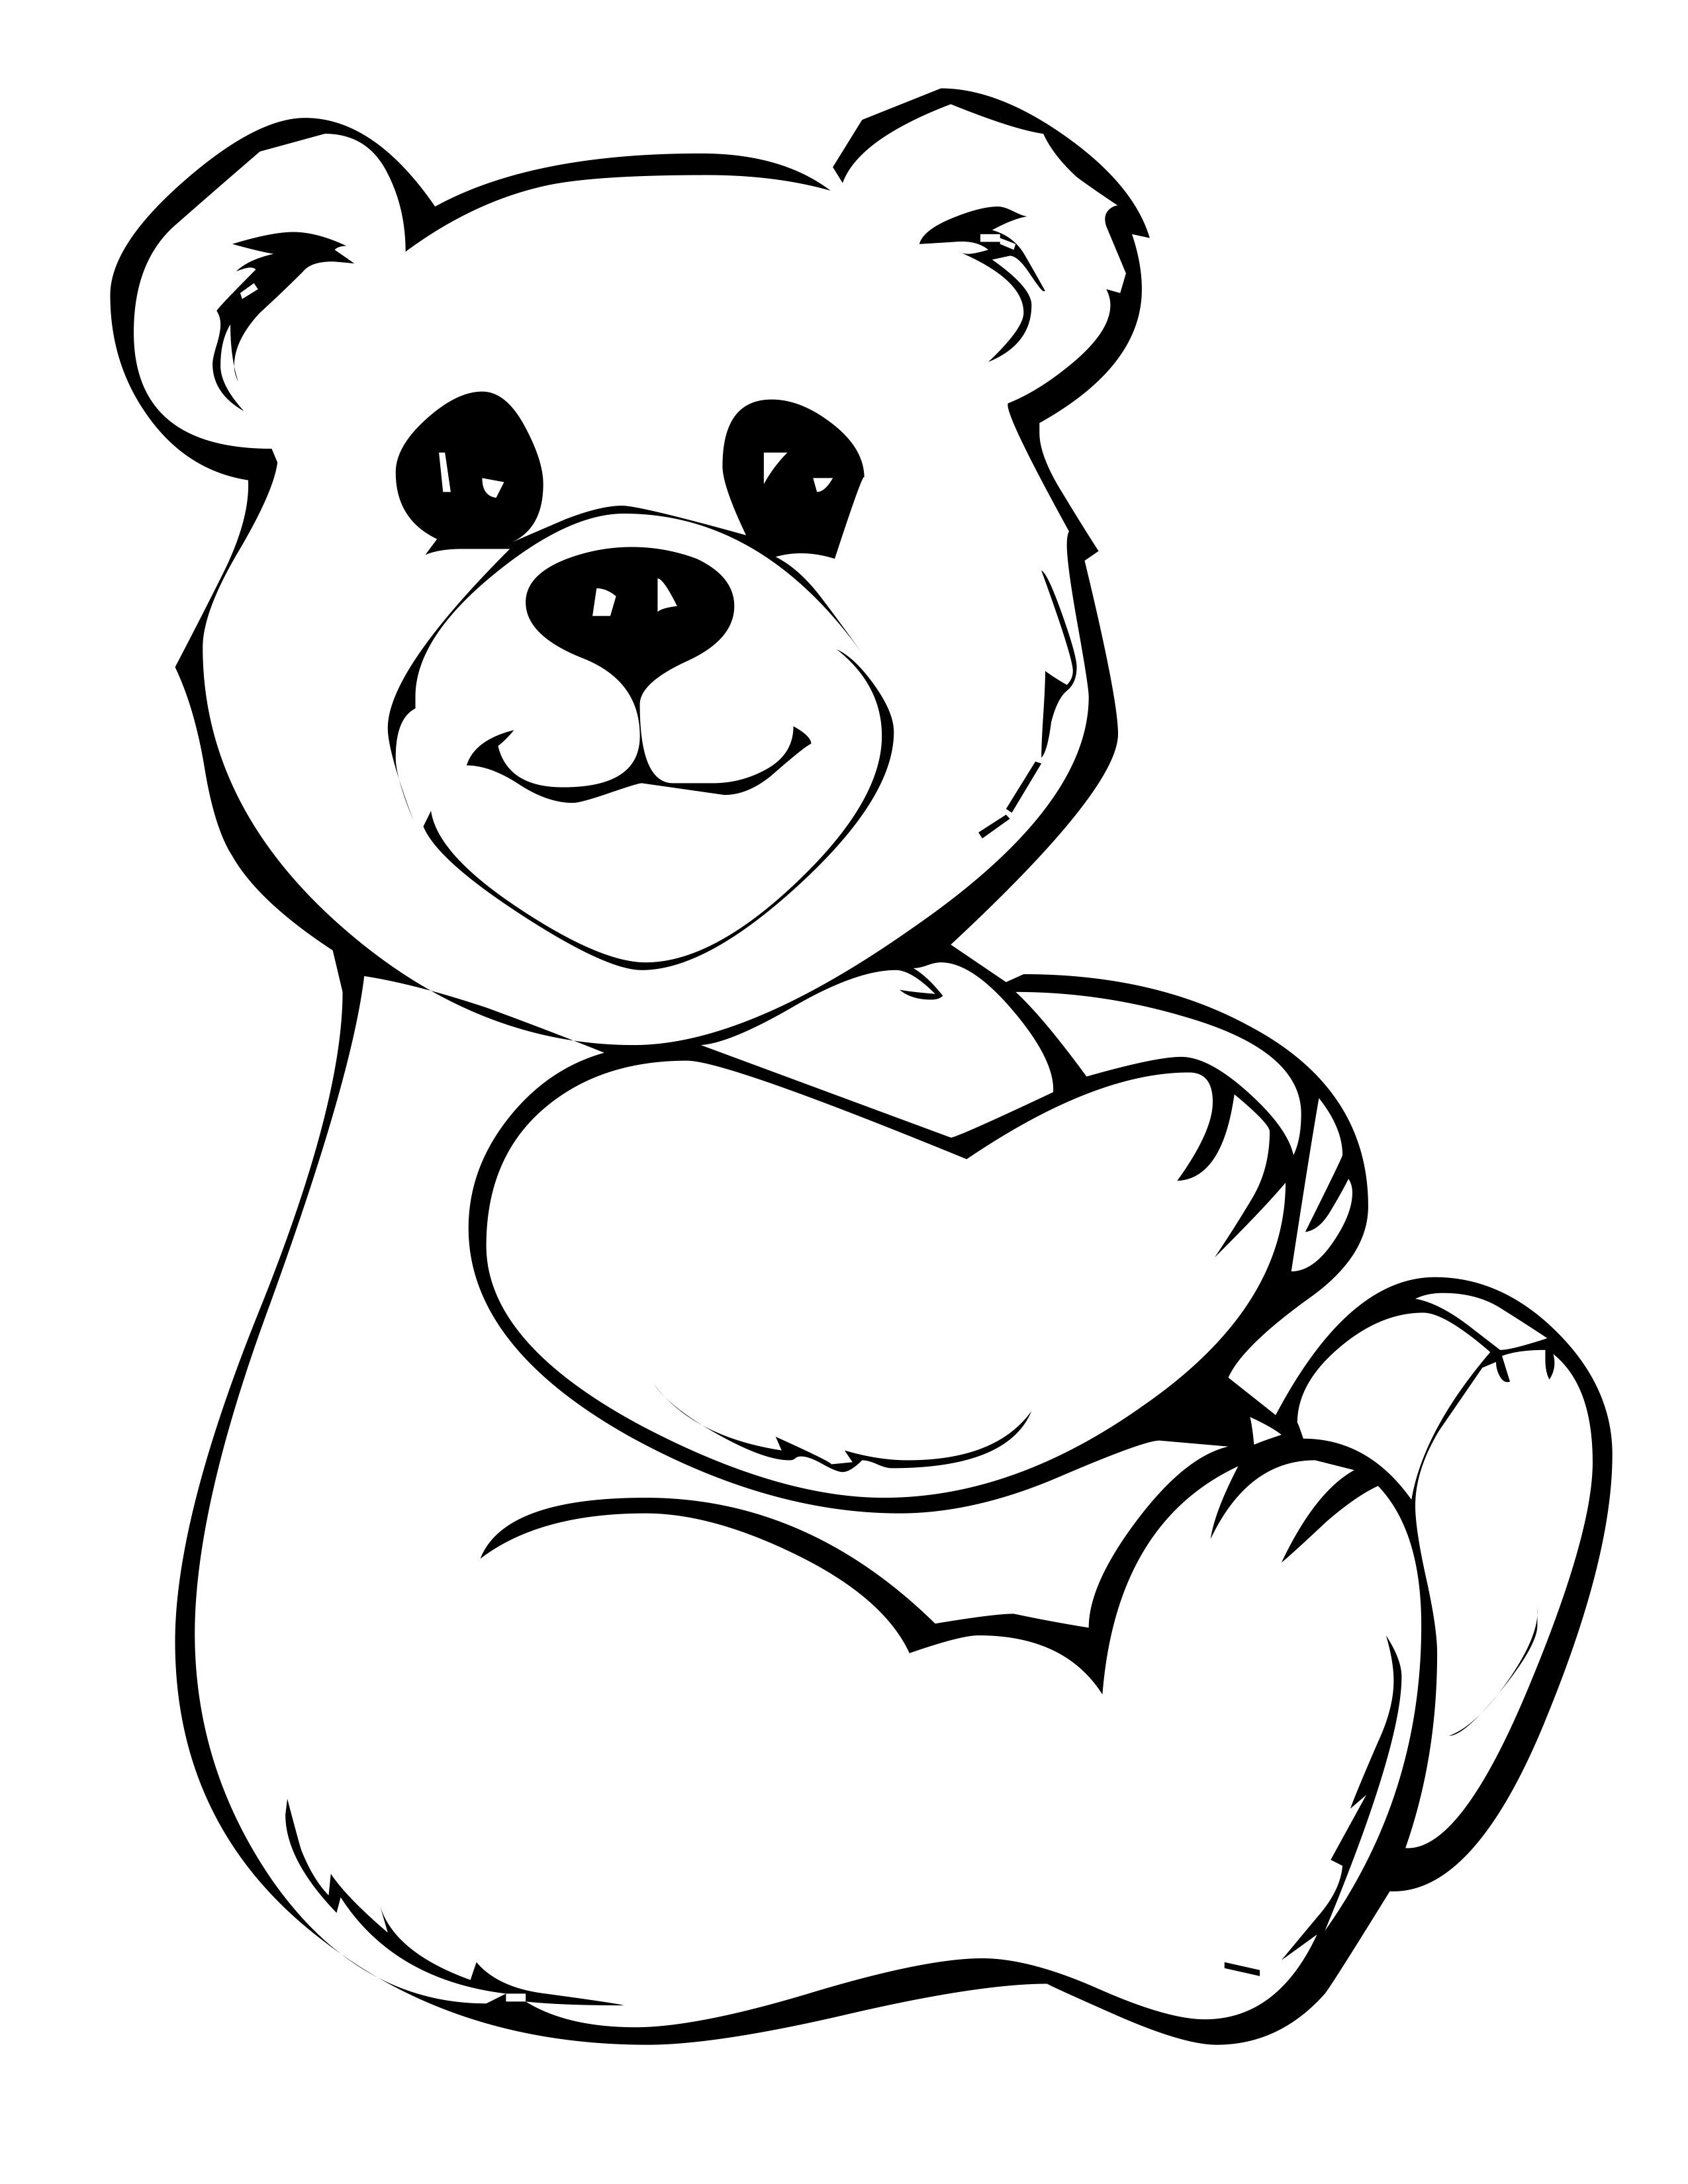 Study Free Printable Teddy Bear Coloring Pages For Kids ...